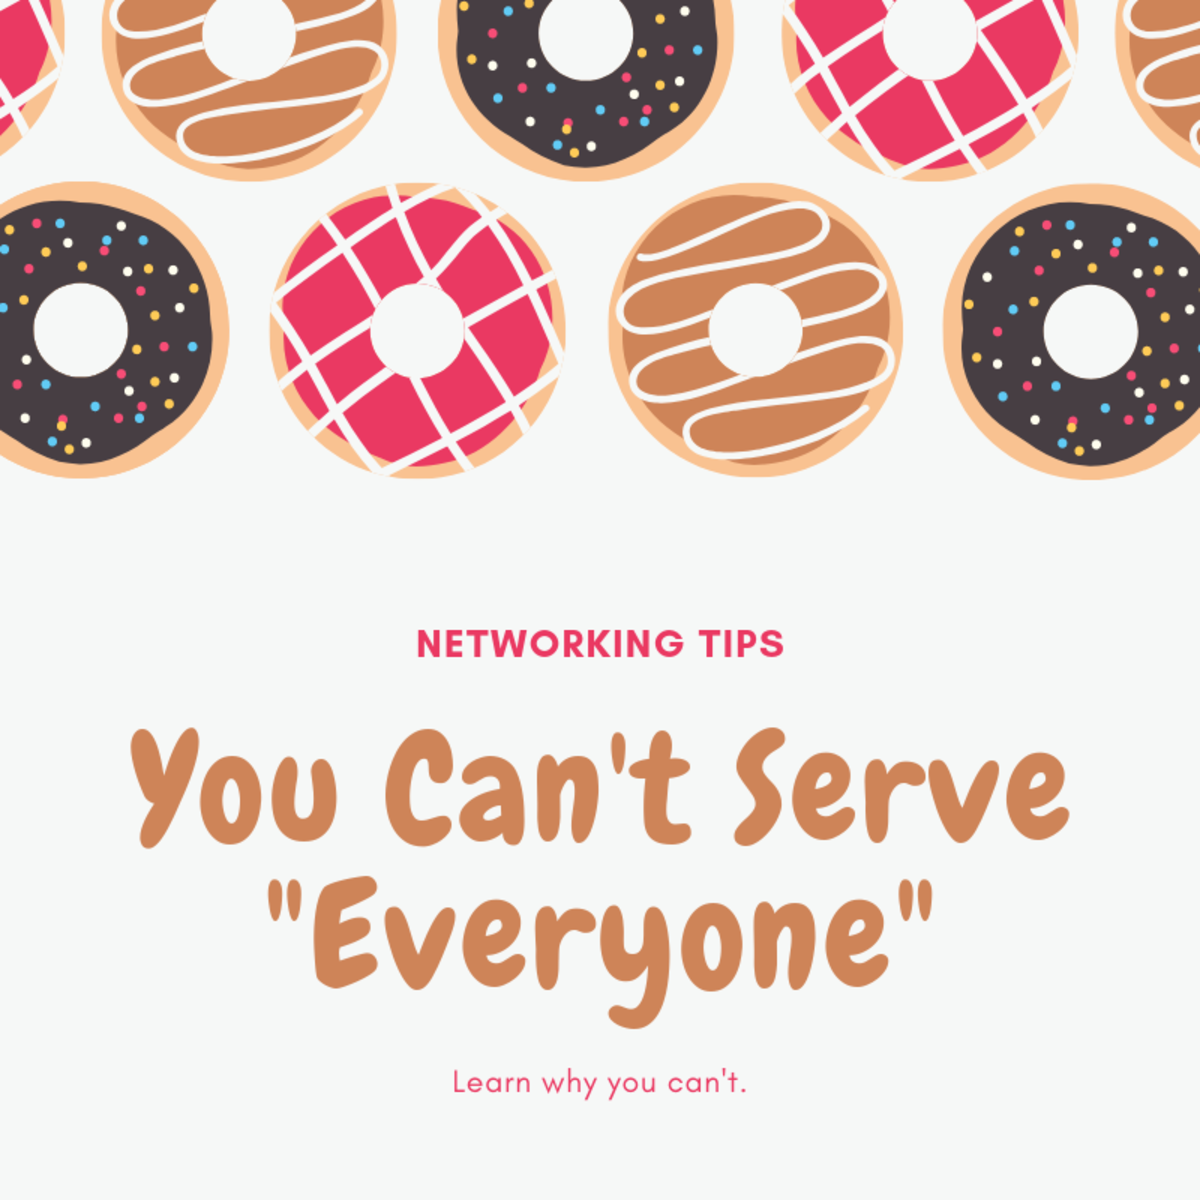 Networking Tips: You Can't Serve Everyone